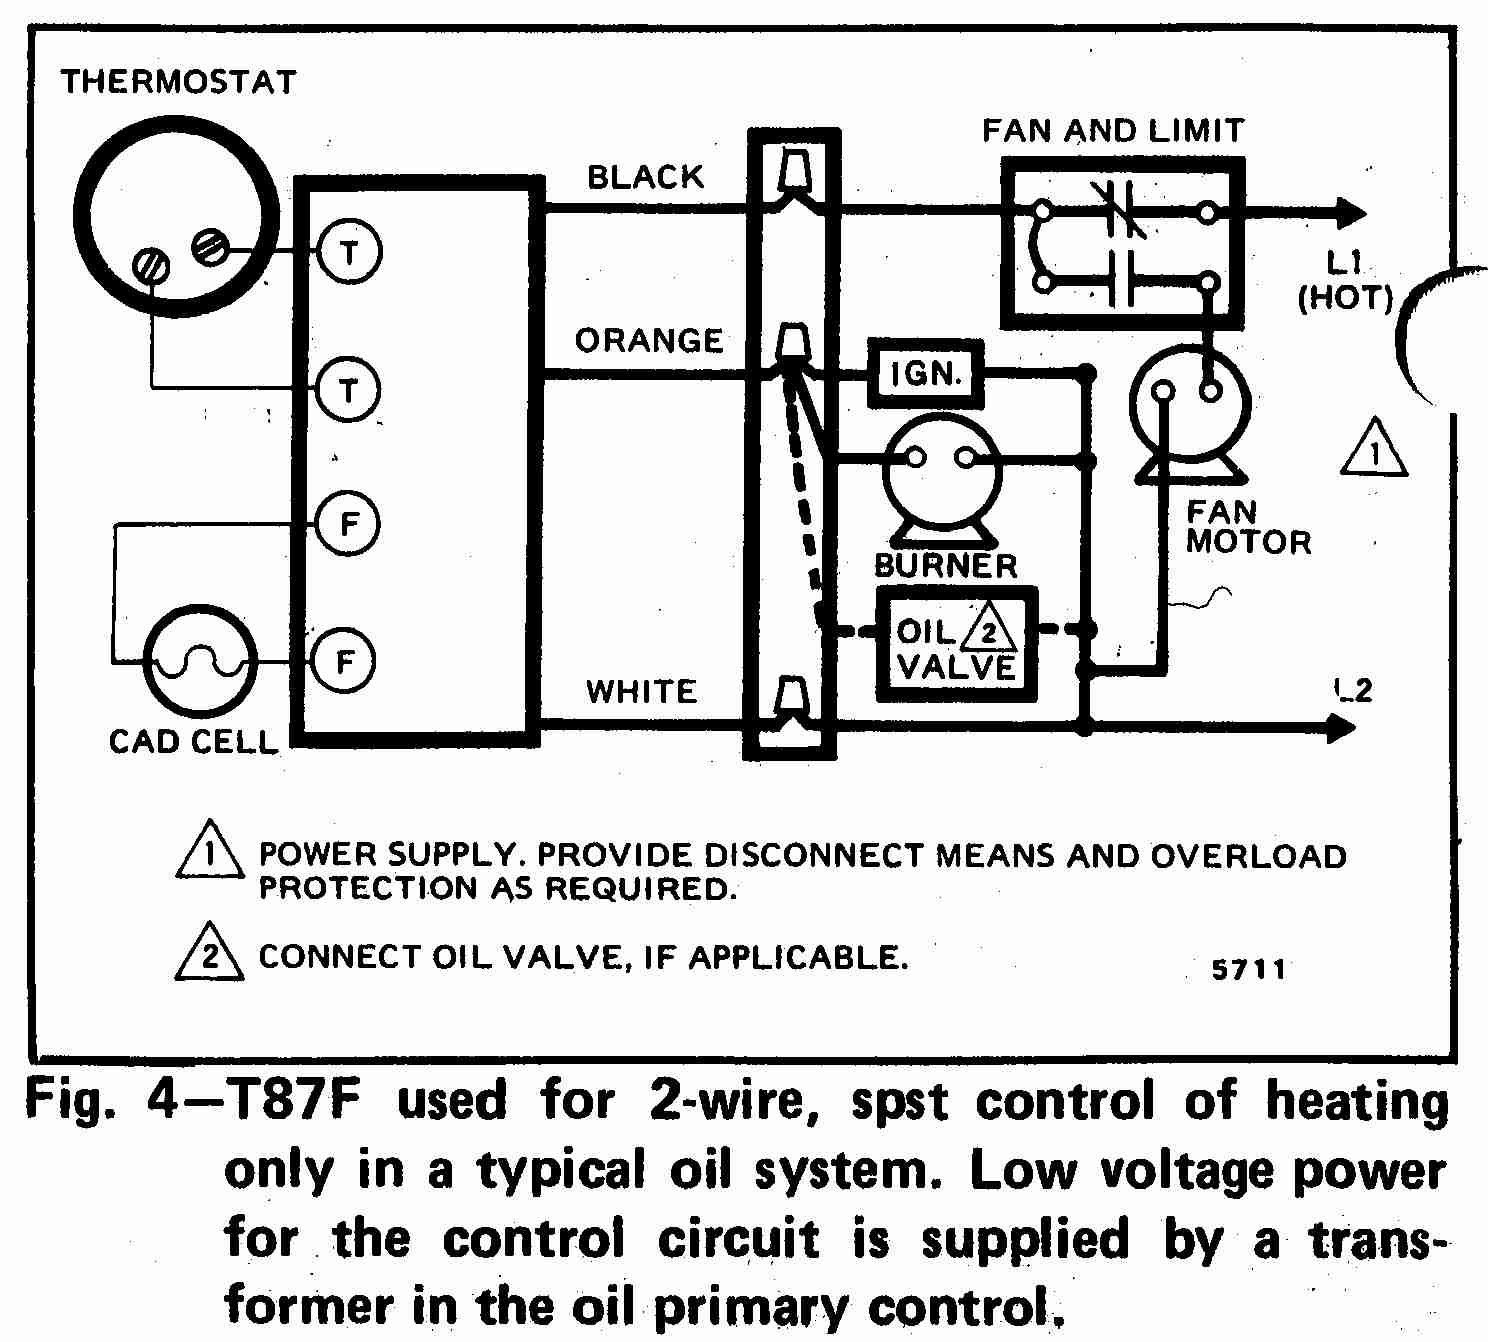 Unique Wiring Diagrams S Plan Heating Systems Diagram Diagramsample Diagramtemplate Check More At Https Mornin Thermostat Wiring Hvac System Diagram Chart